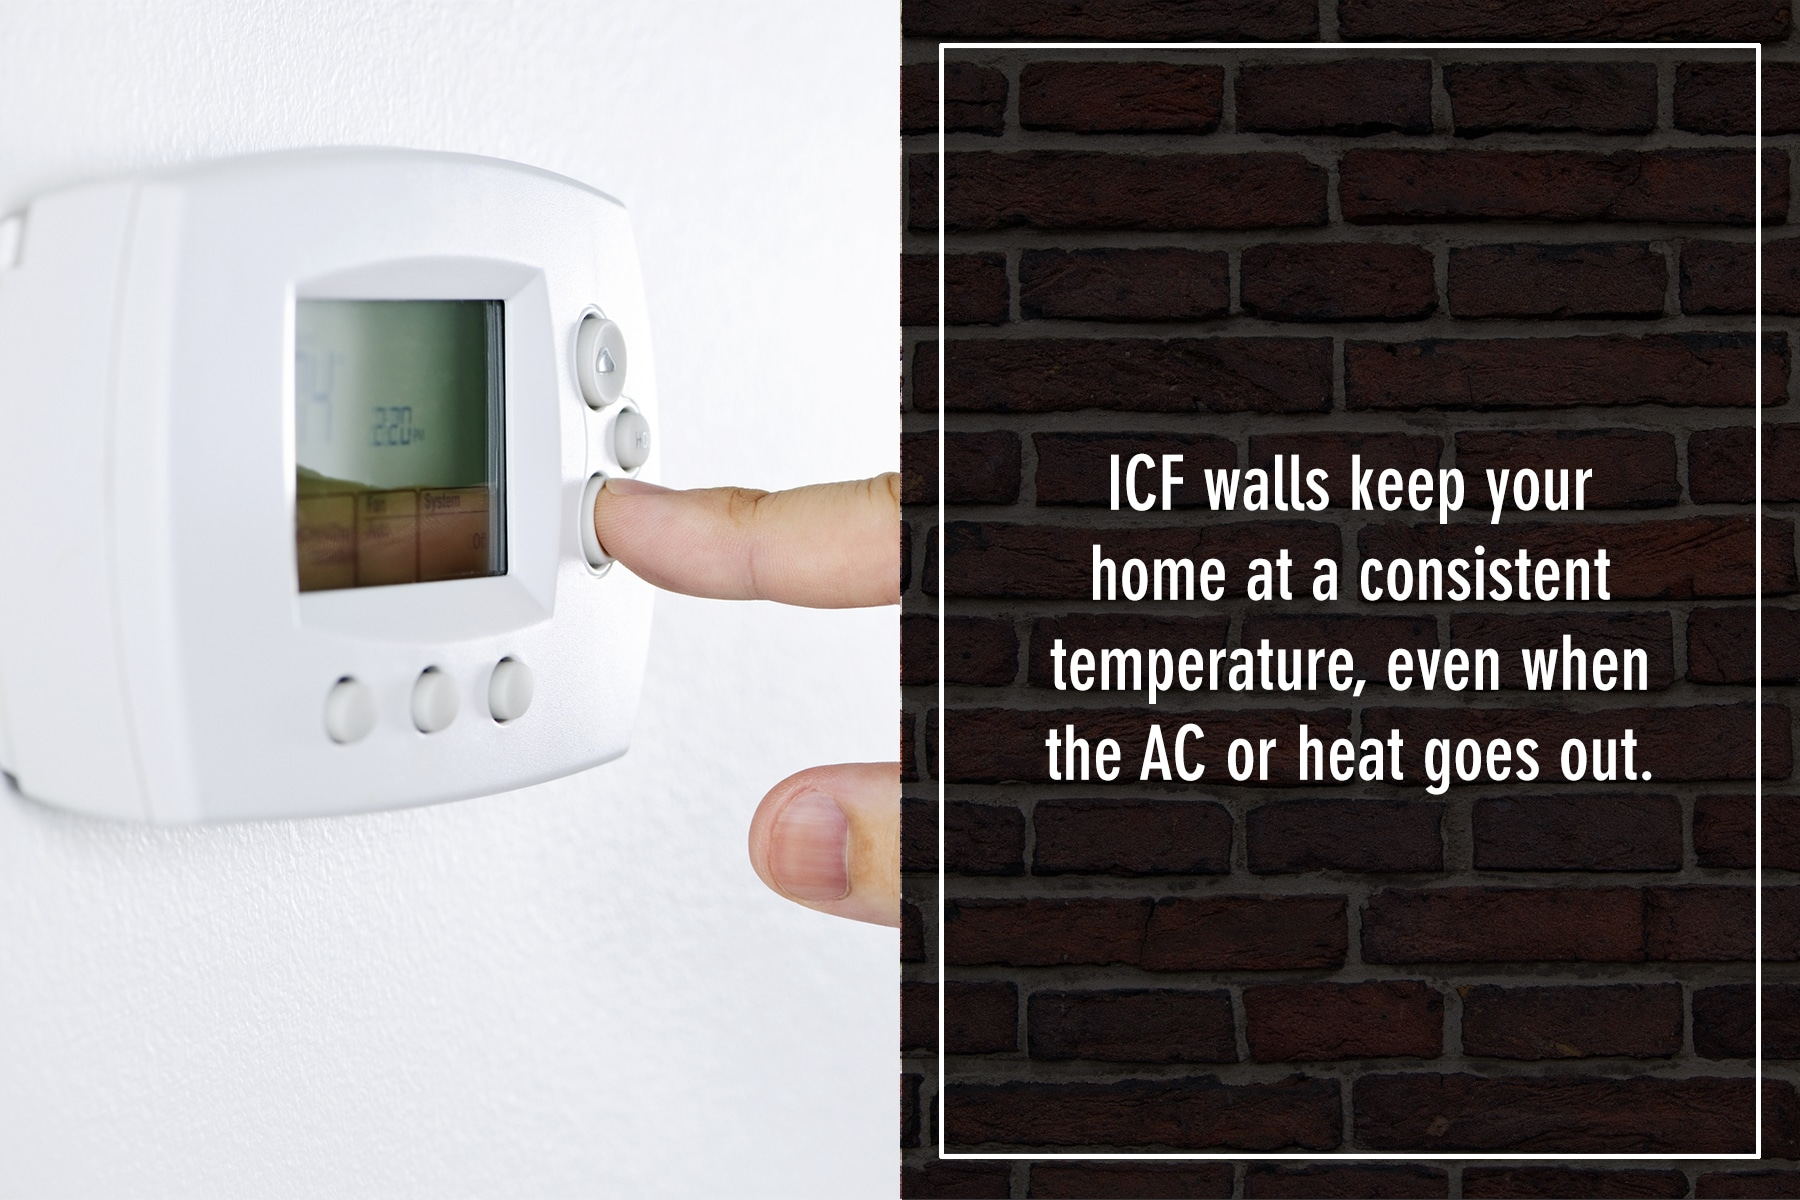 ICF walls keep your home at a consistent temperature